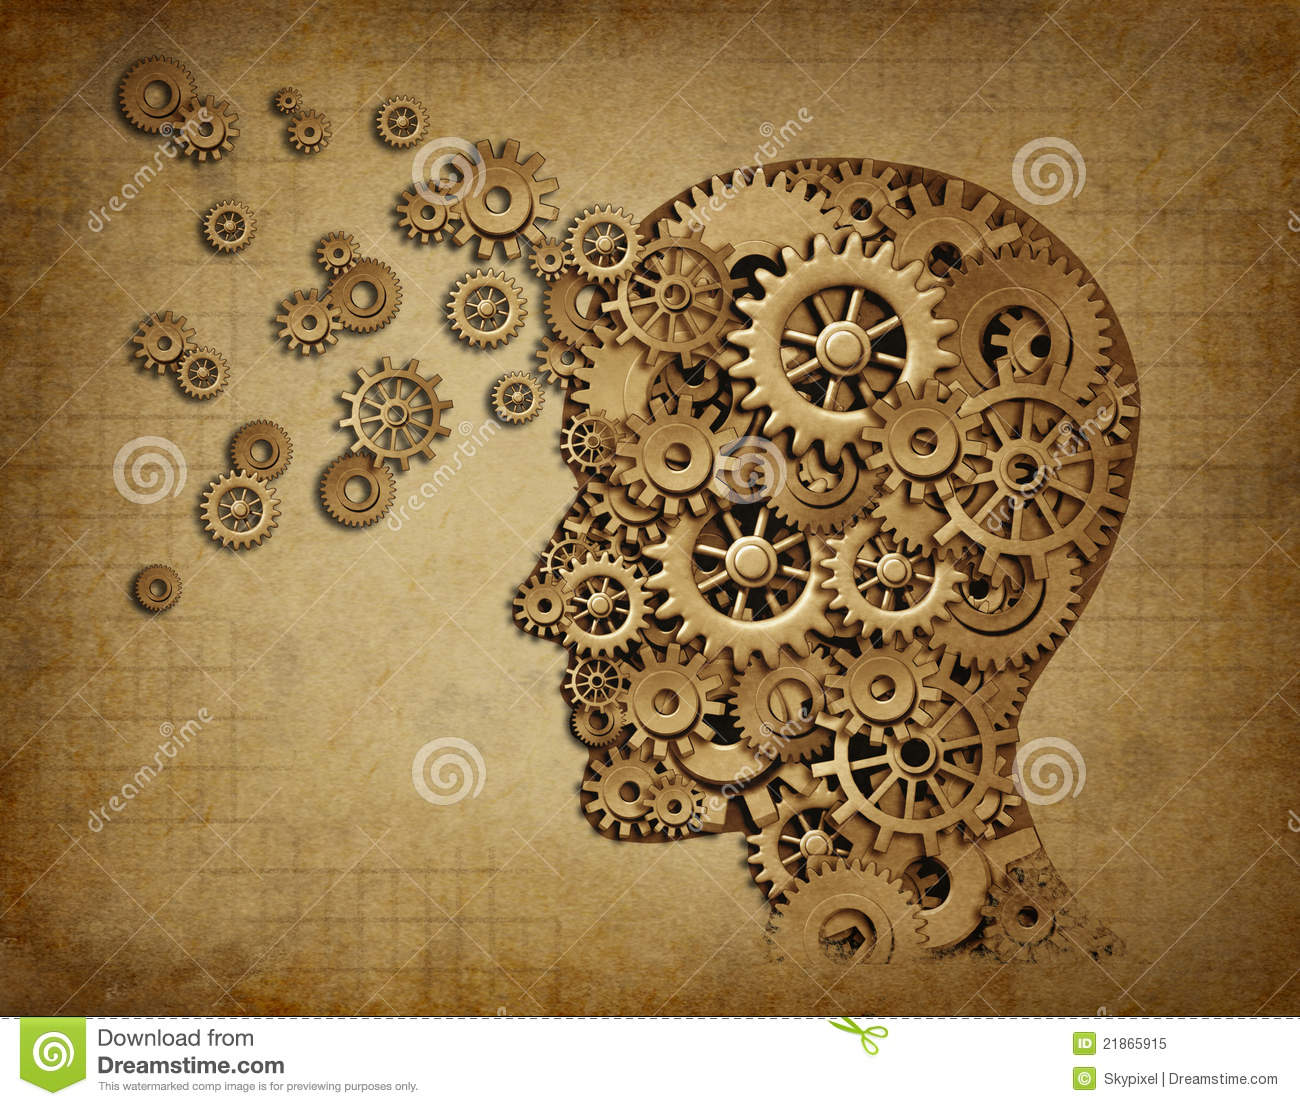 Grunge Wallpaper Hd Human Brain Function Grunge With Gears Stock Illustration